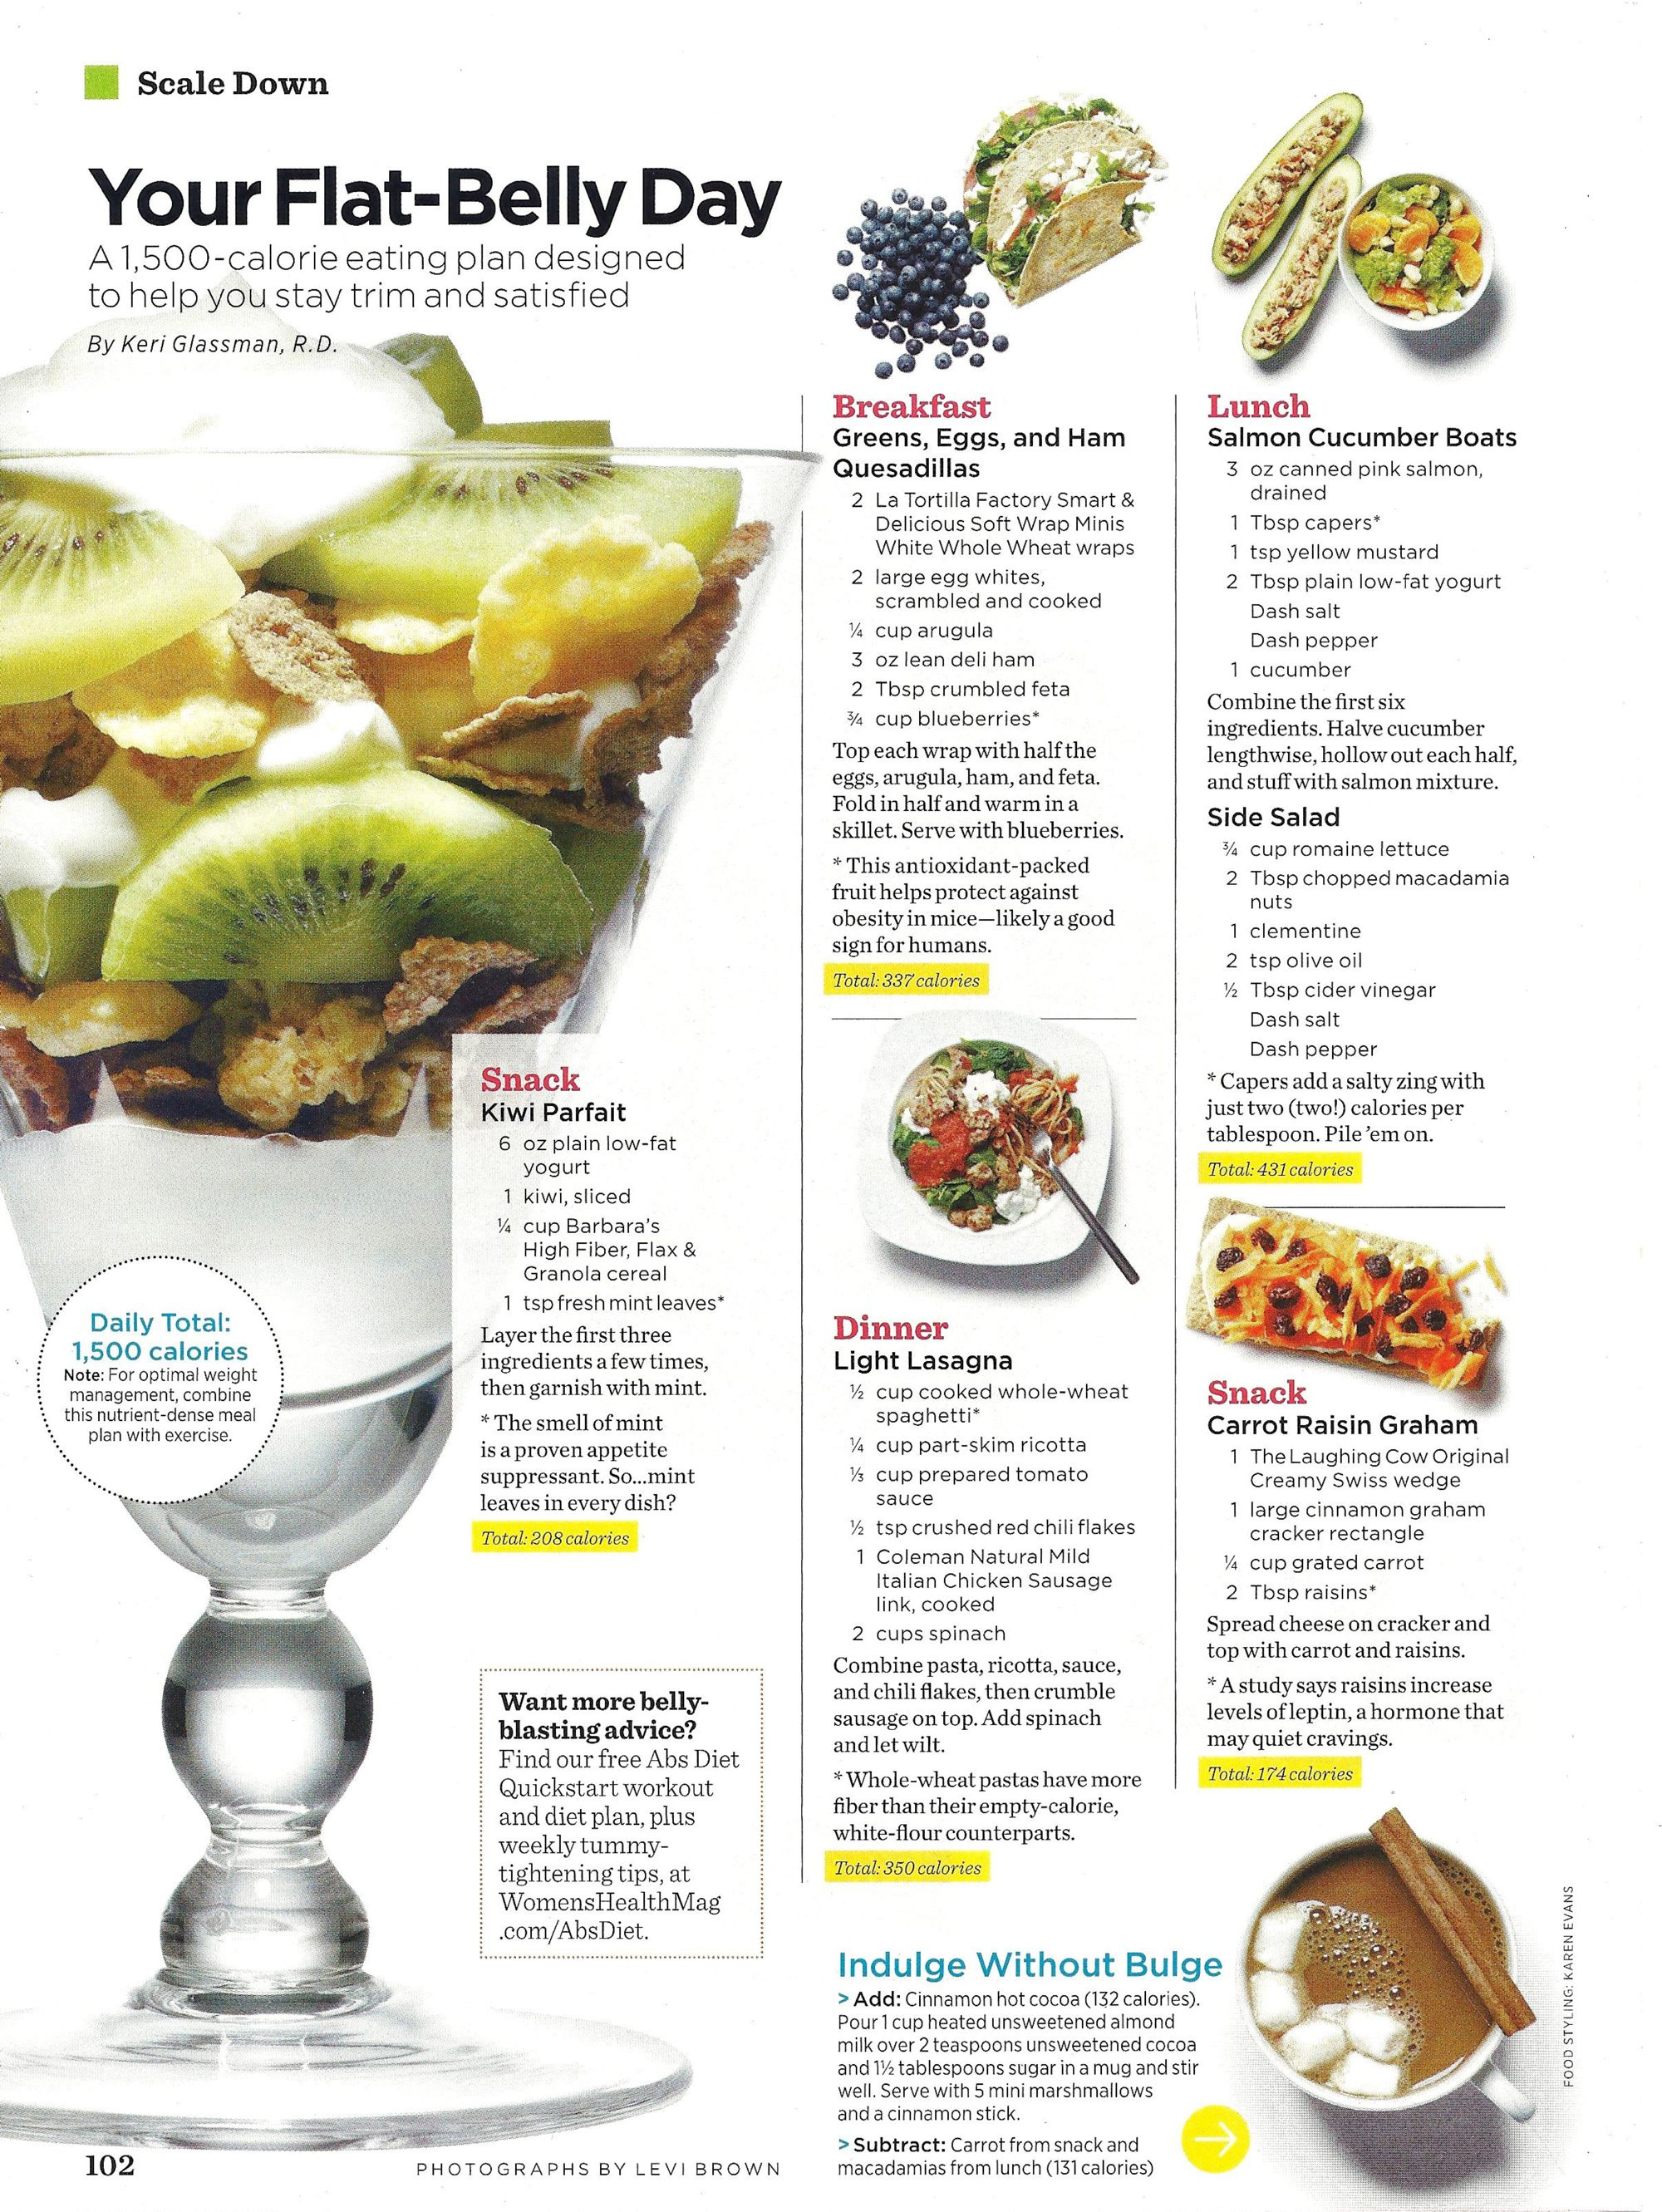 Weight loss meal plans womens health